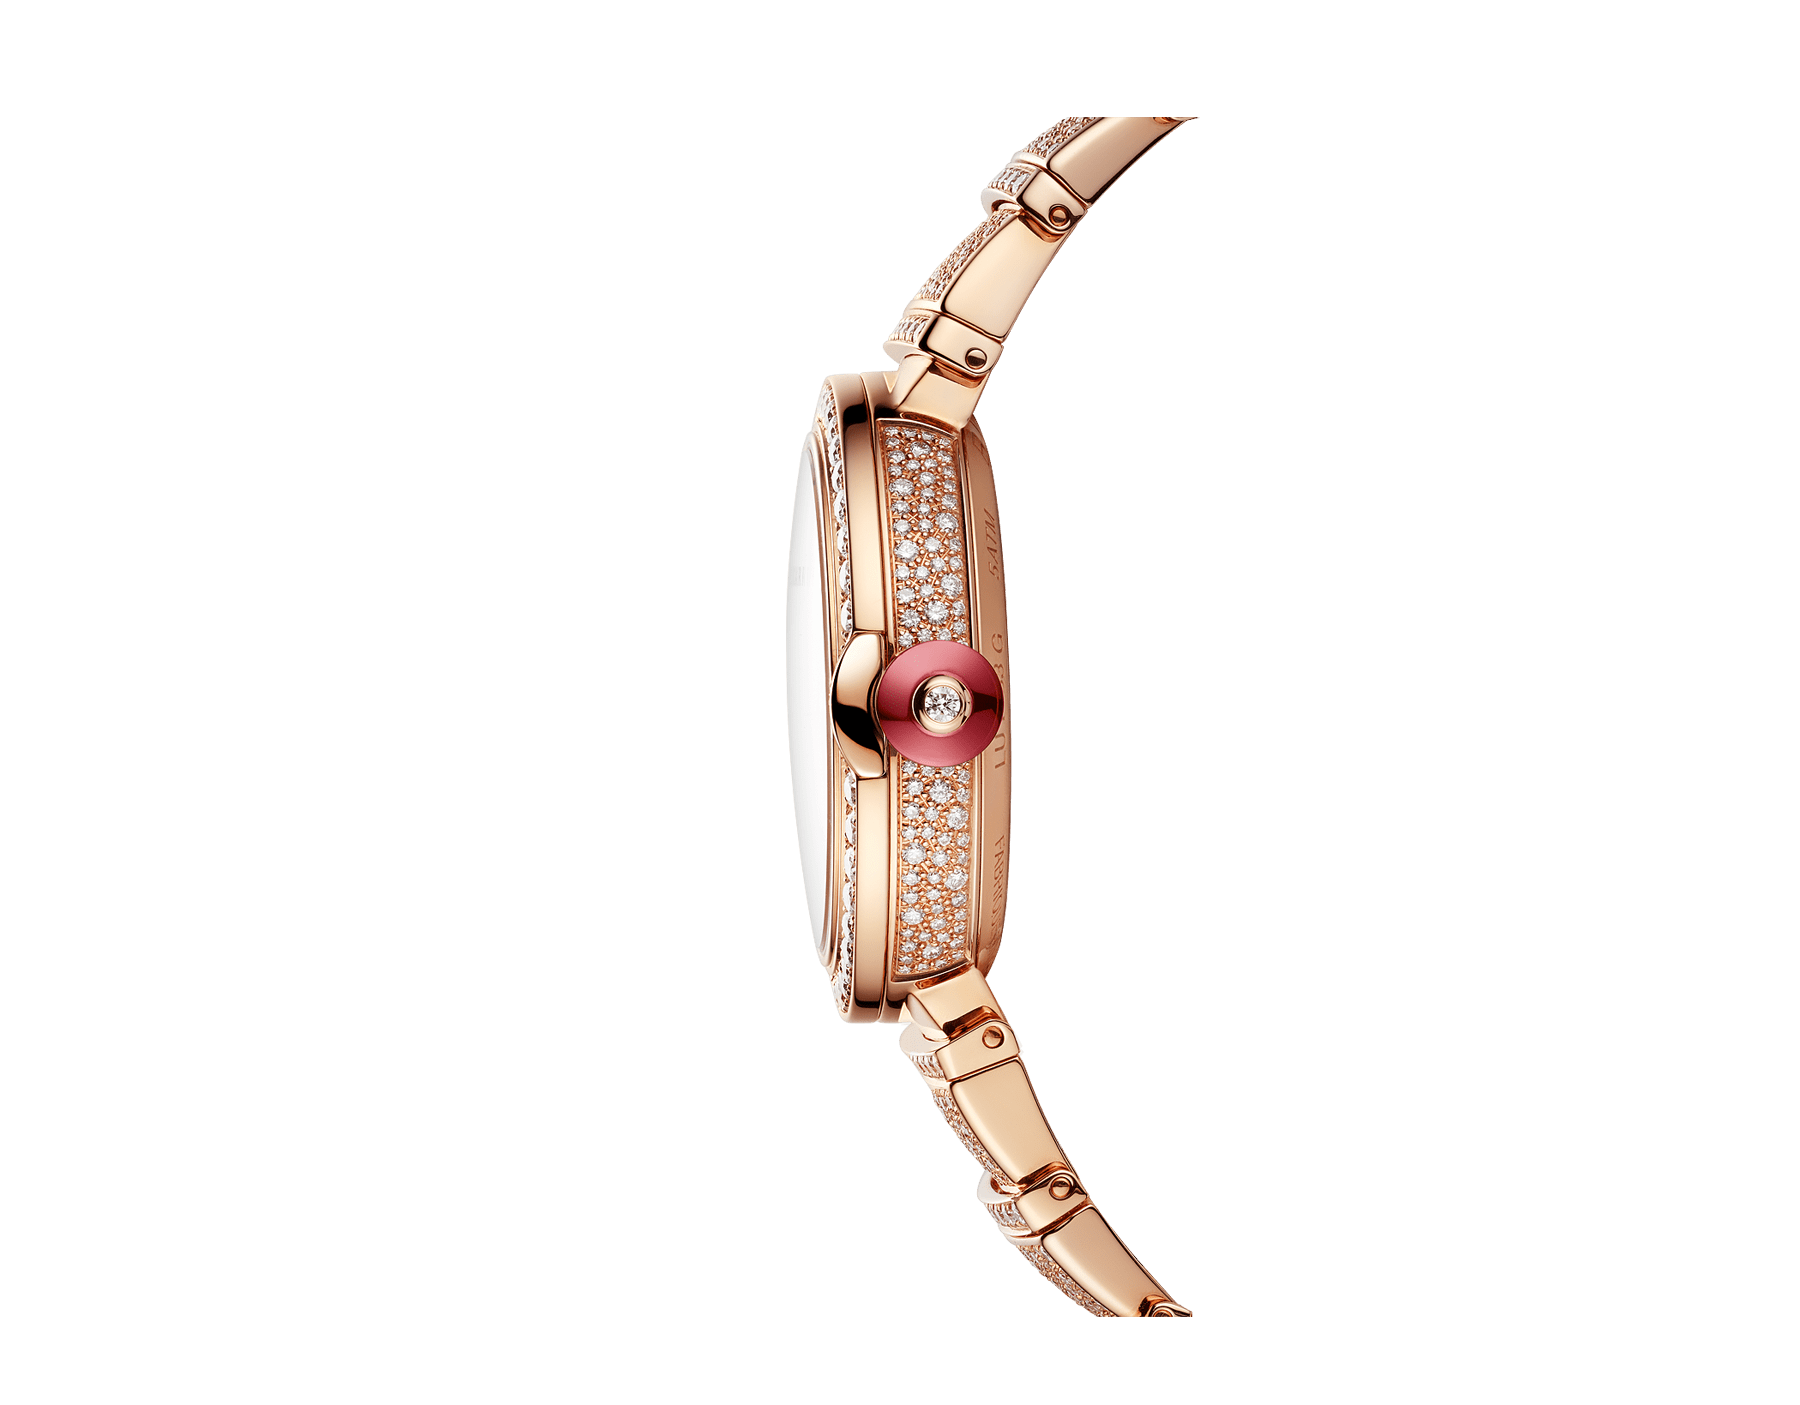 LVCEA watch in 18kt rose gold case and bracelet, both set with brilliant-cut diamonds, and full pavé diamond dial. 102617 image 3